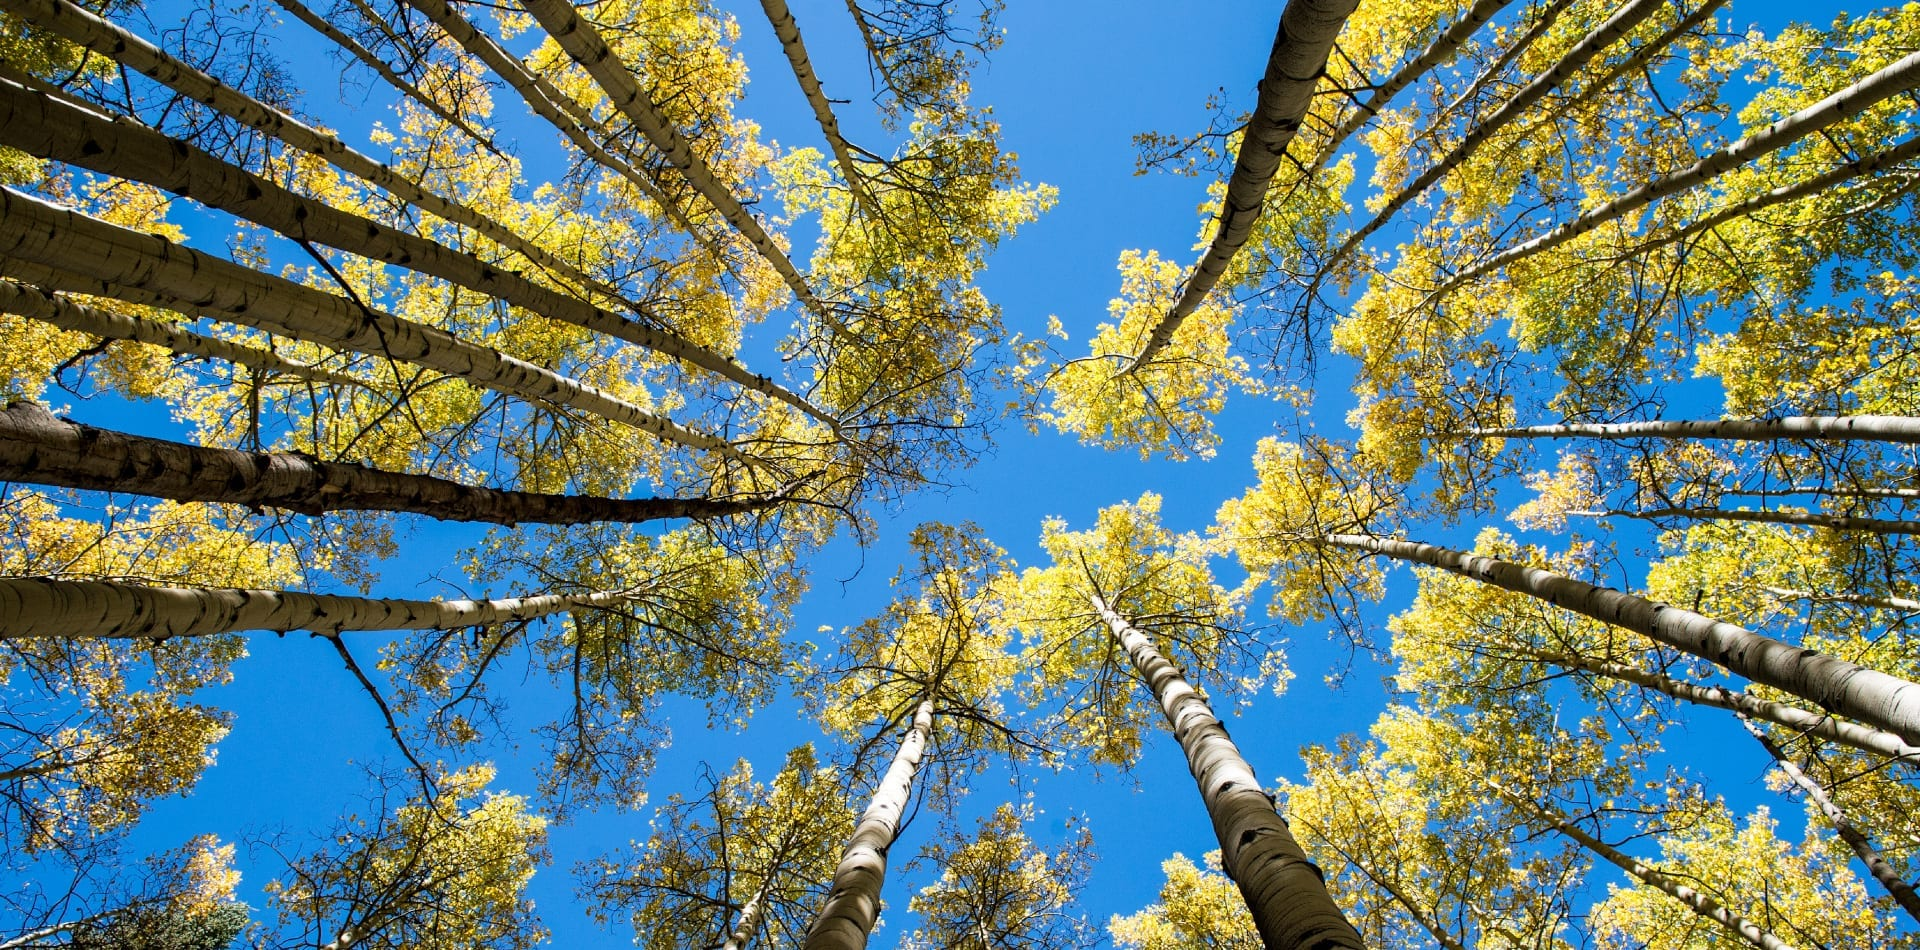 Treeline from below in Colorado